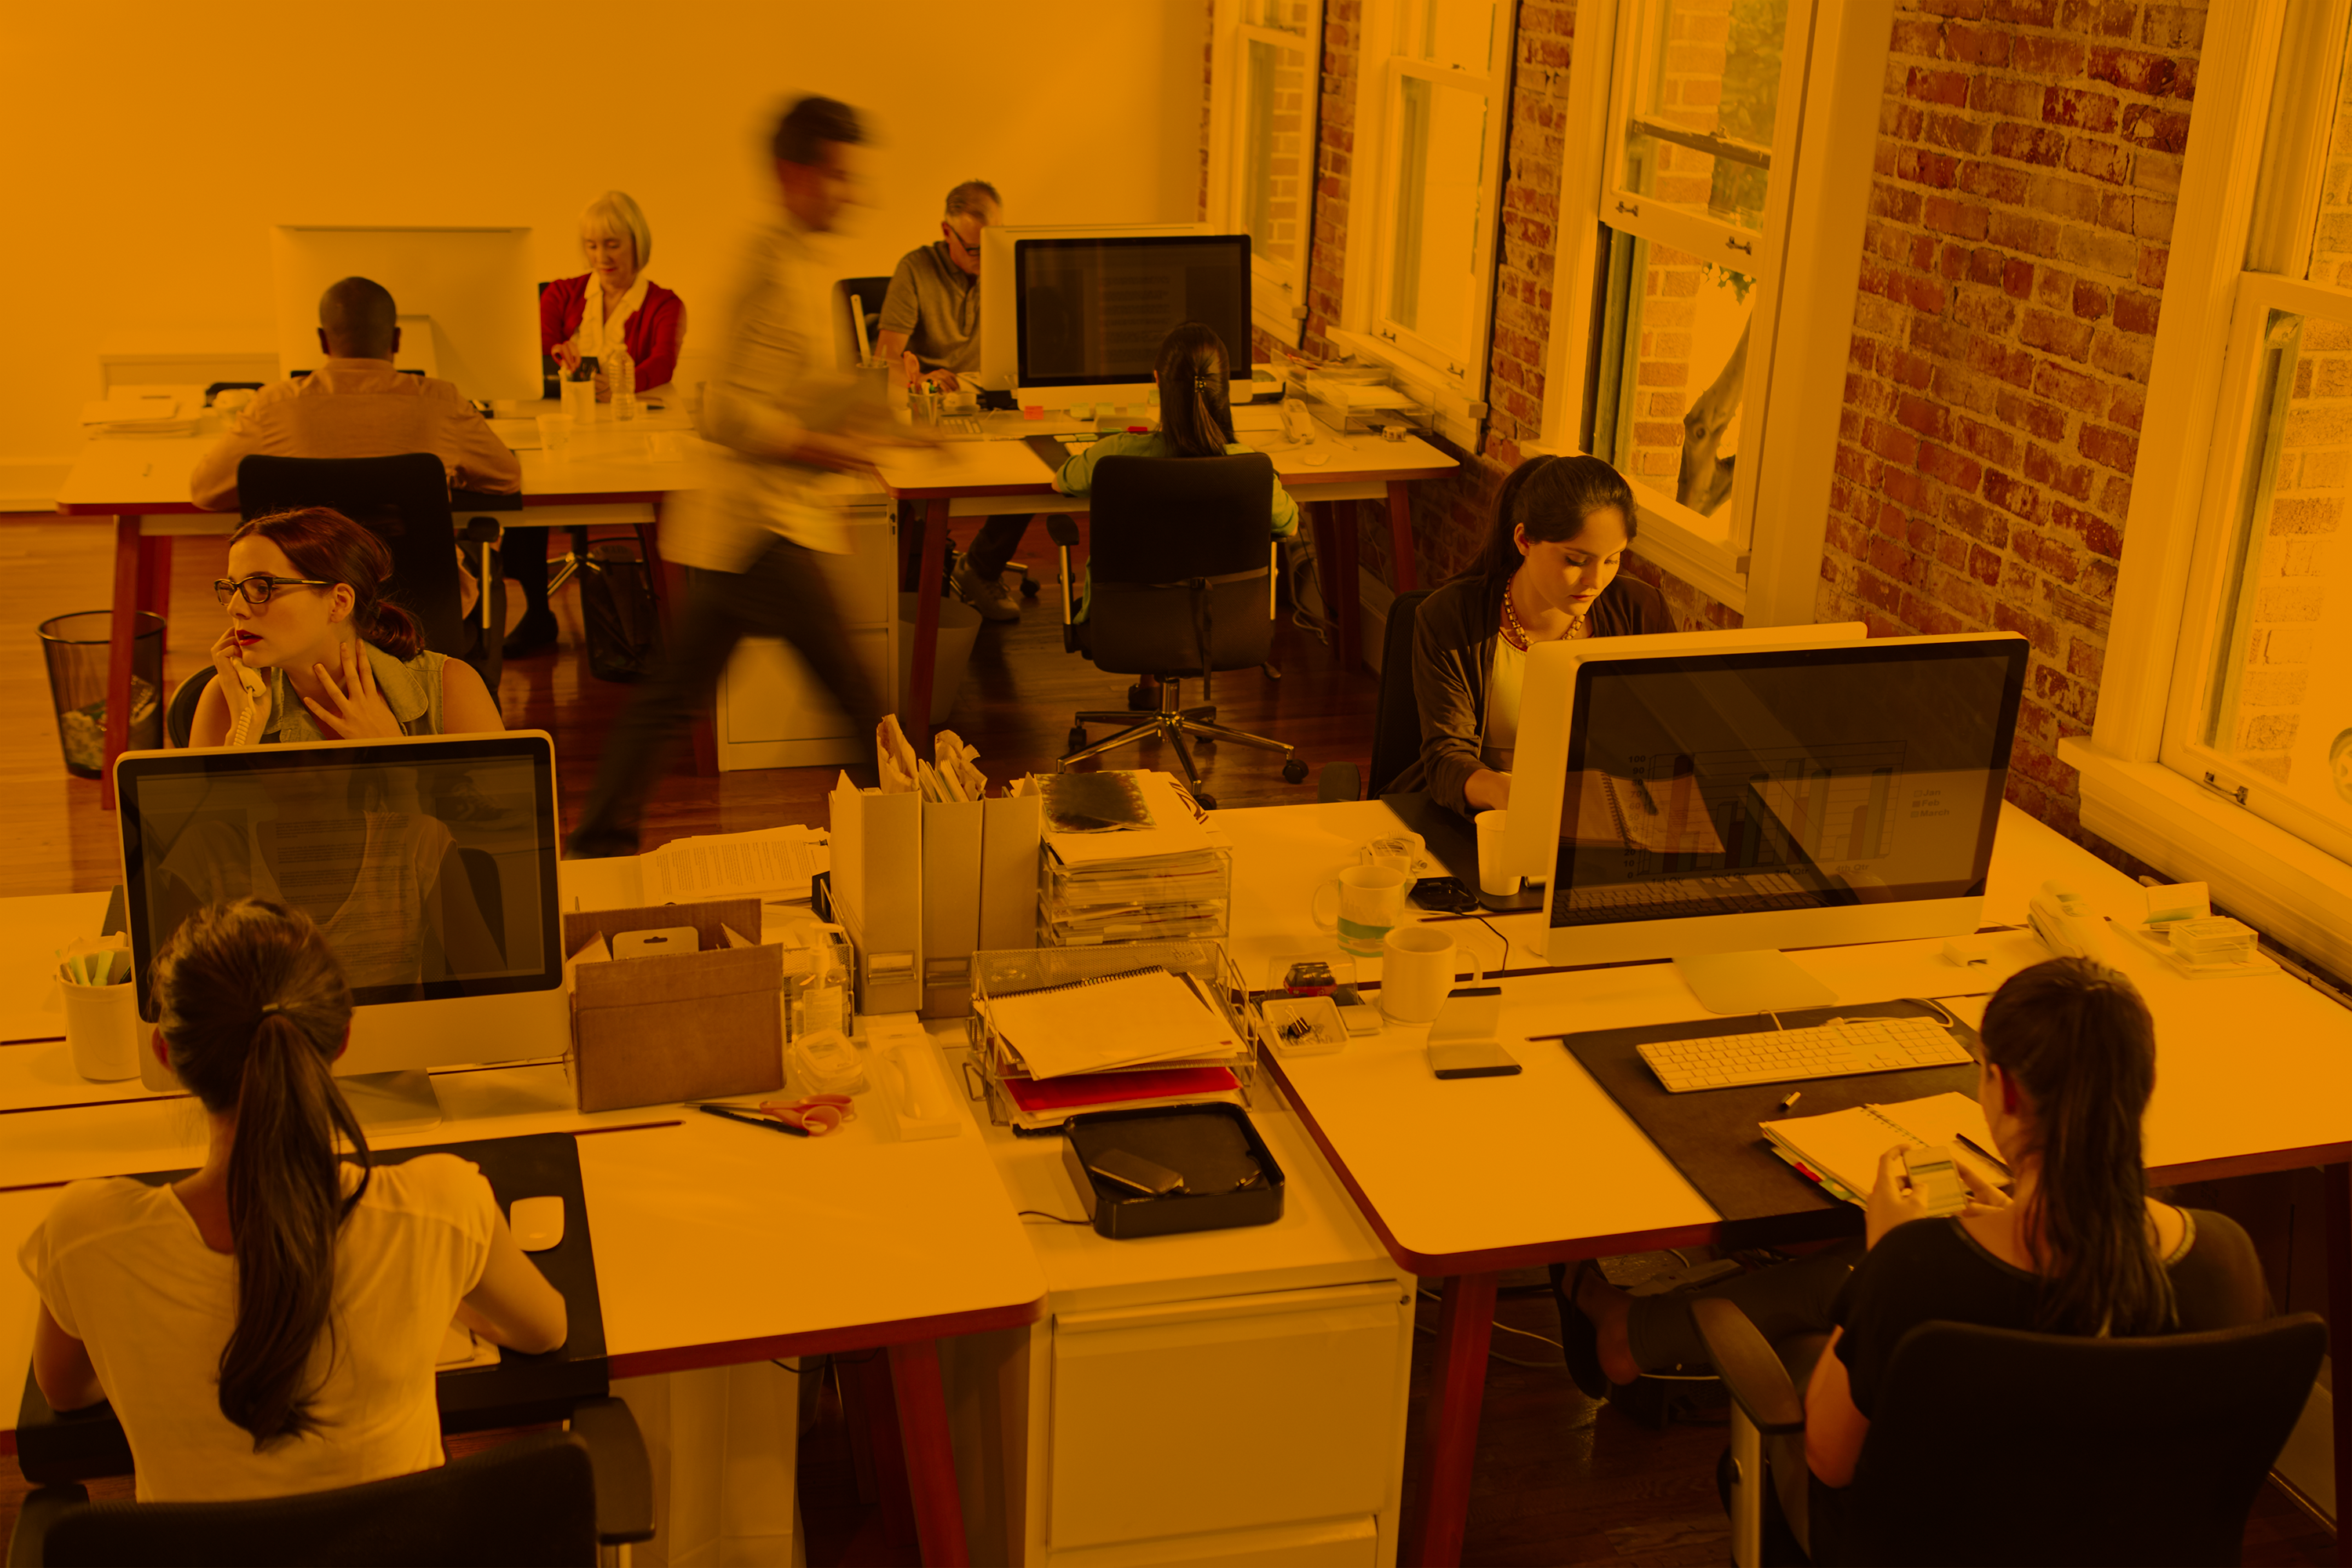 Coworking spaces vs. flexible workspaces: What are the main differences?